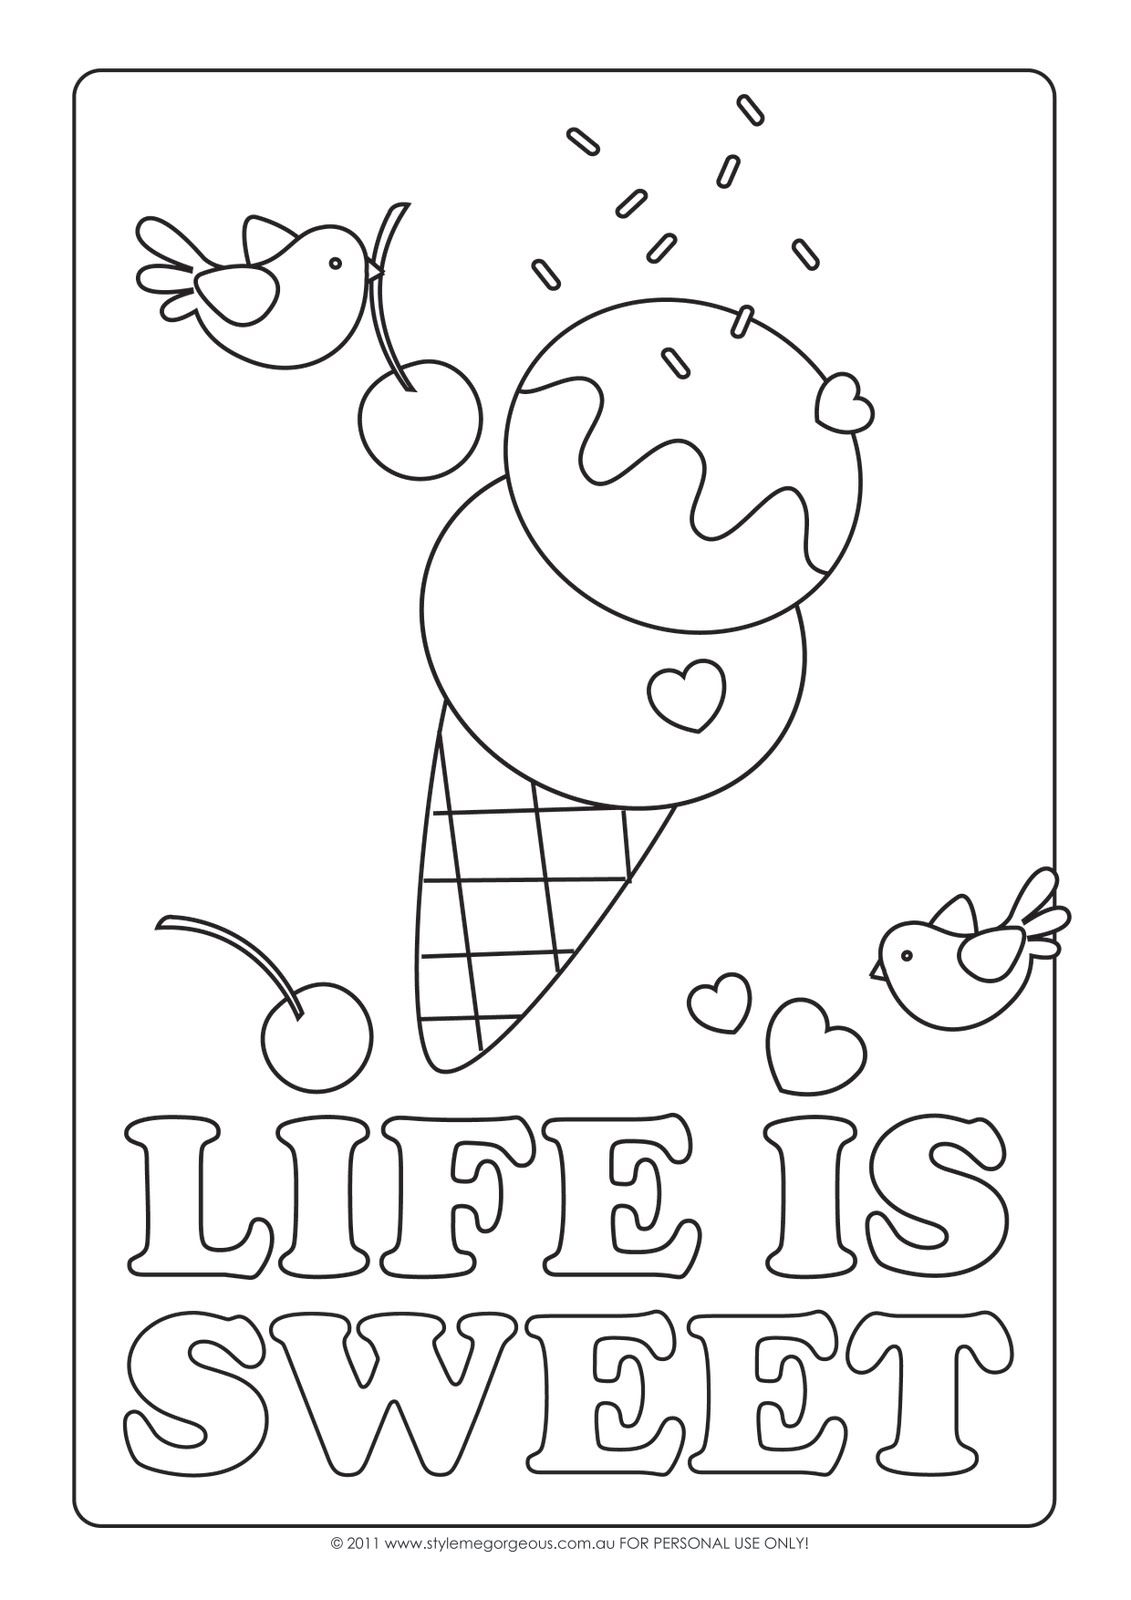 ABCs - Style Me Gorgeous: Life Is Sweet - Free Coloring Page ...